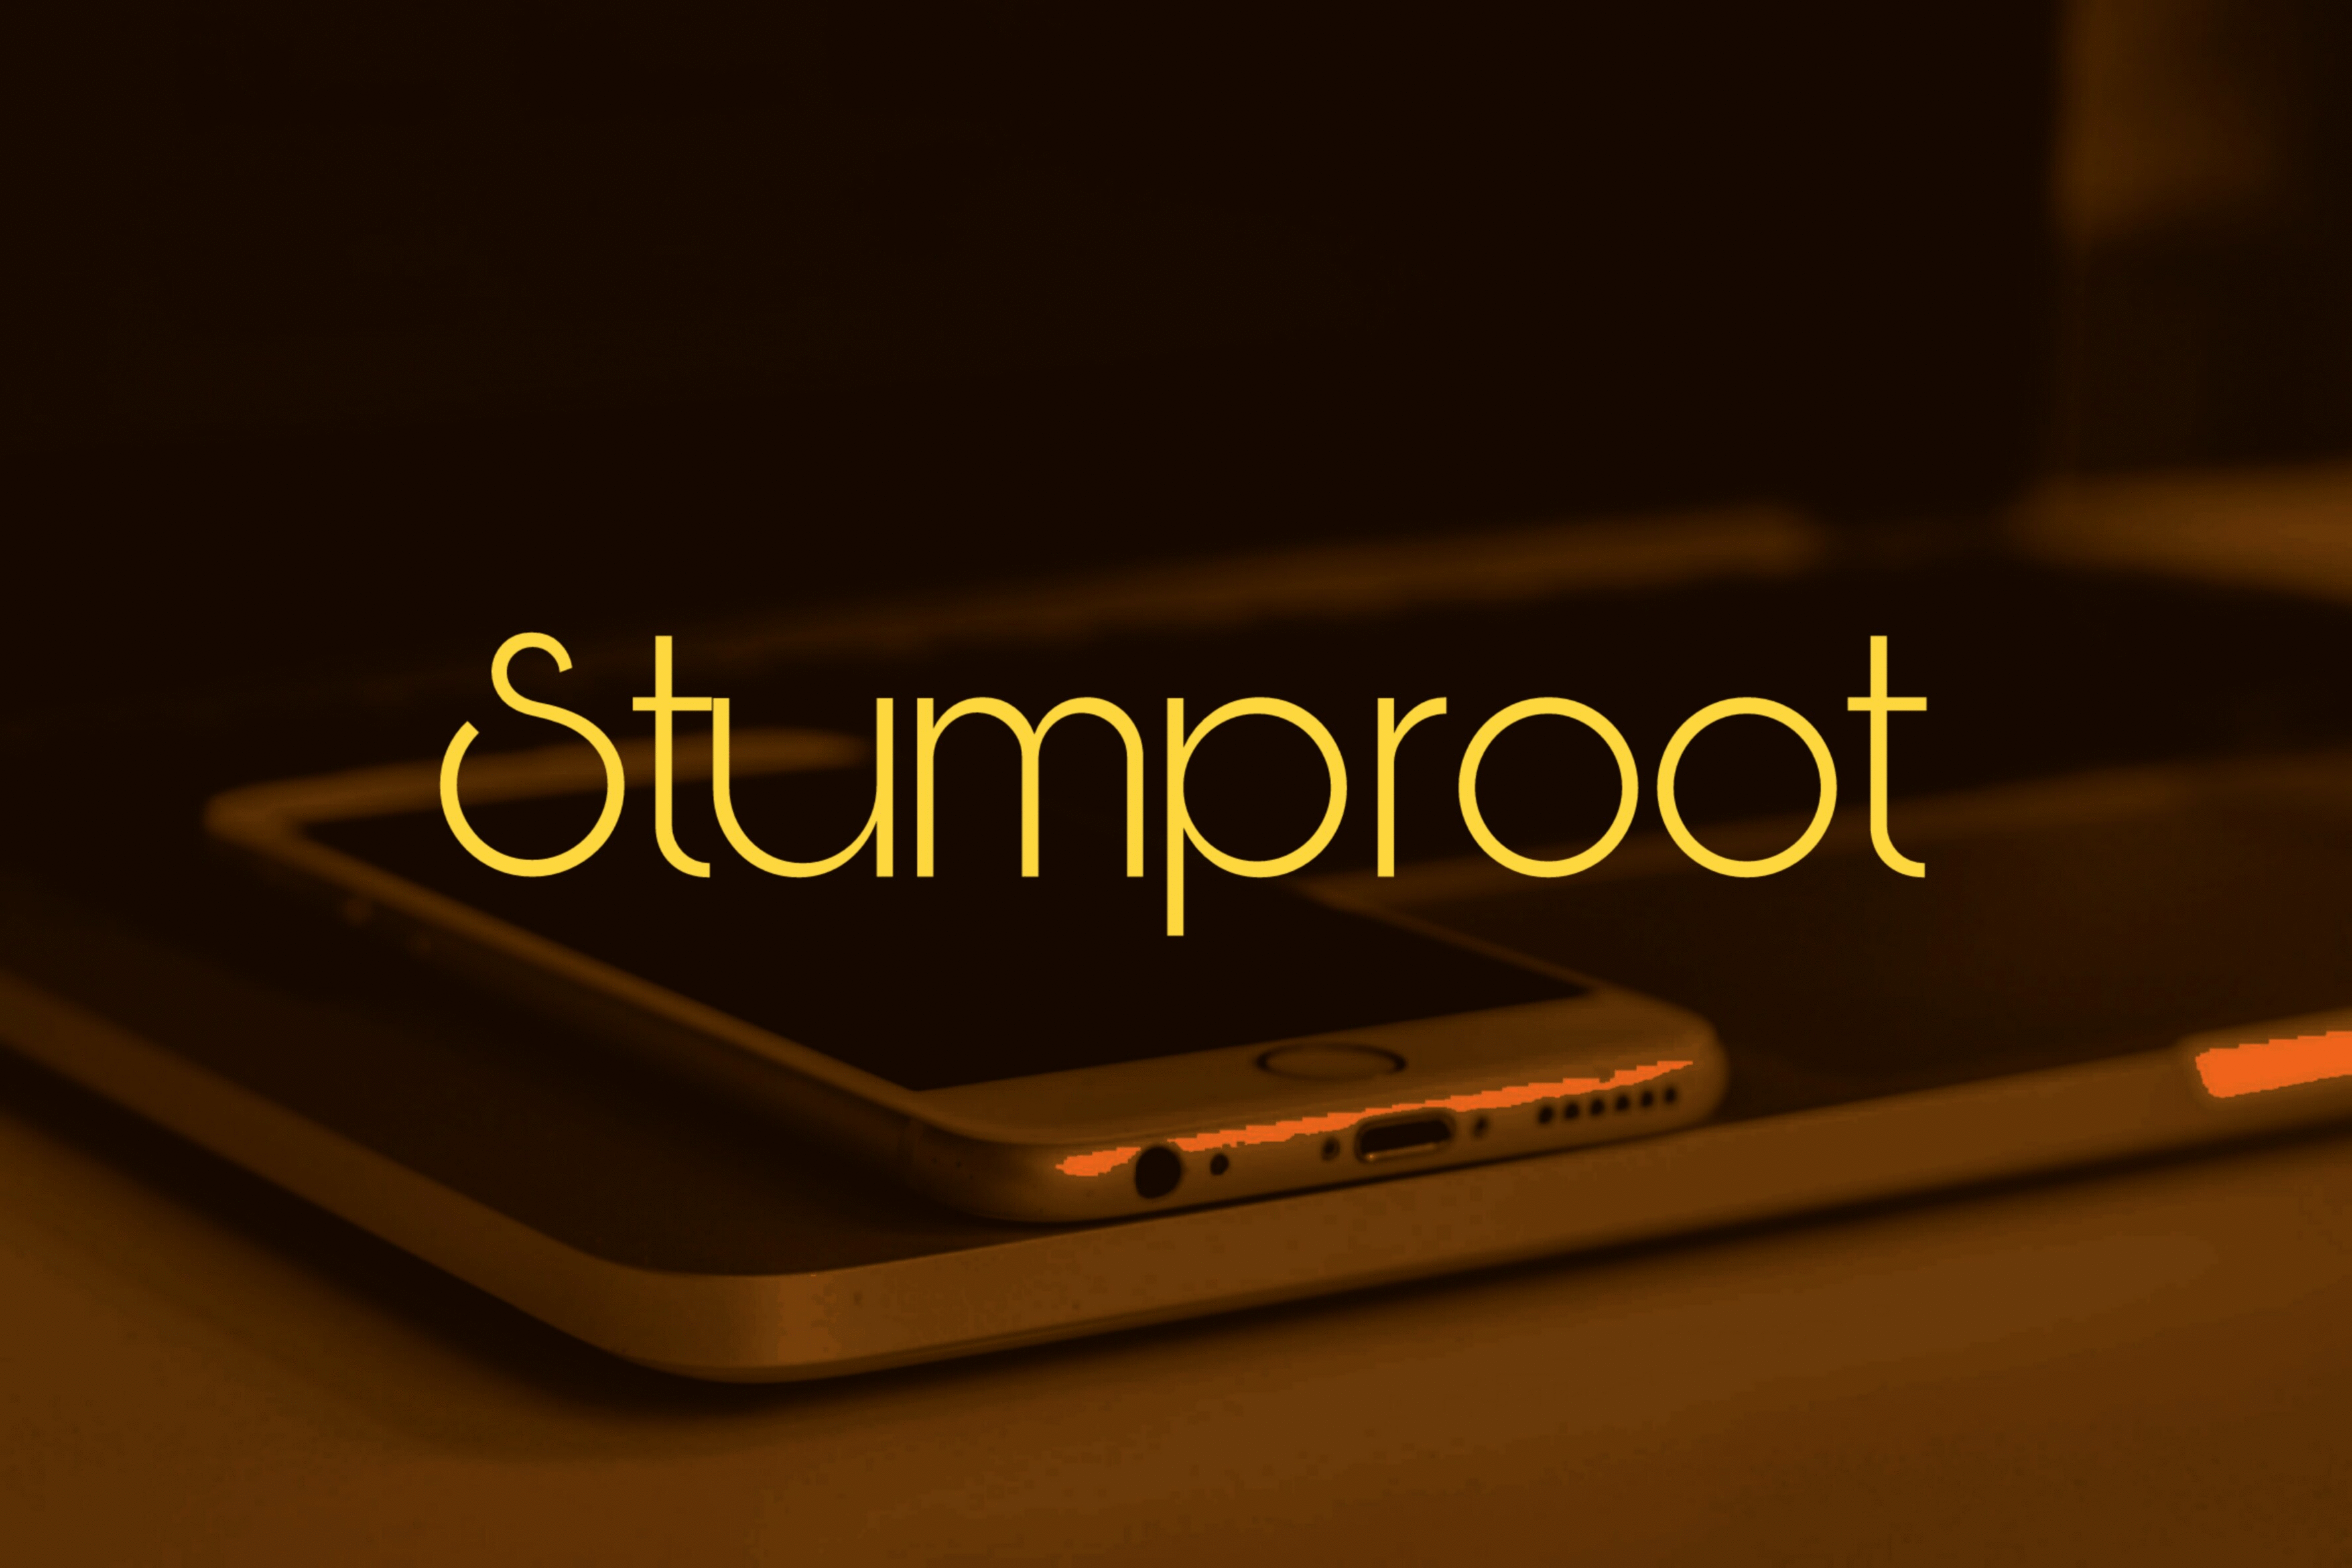 Stump root download for root LG smartphones